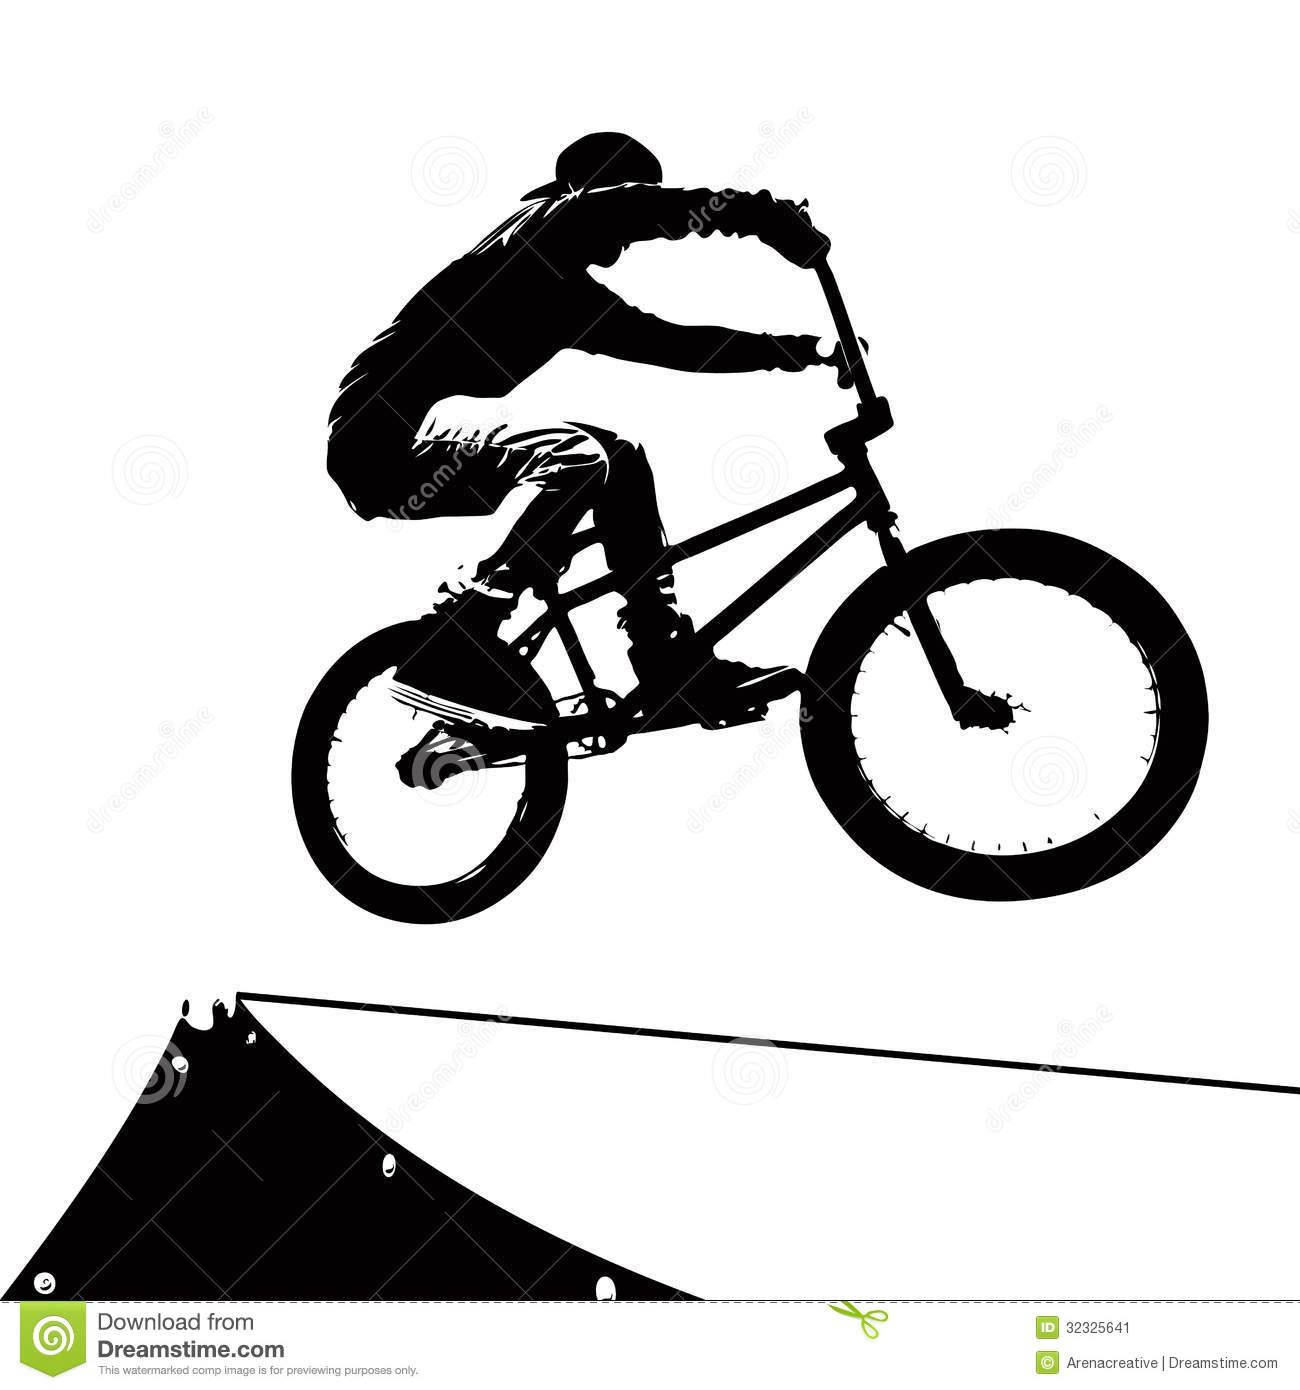 High contrast silhouette of an extreme sports bike rider doing a ...